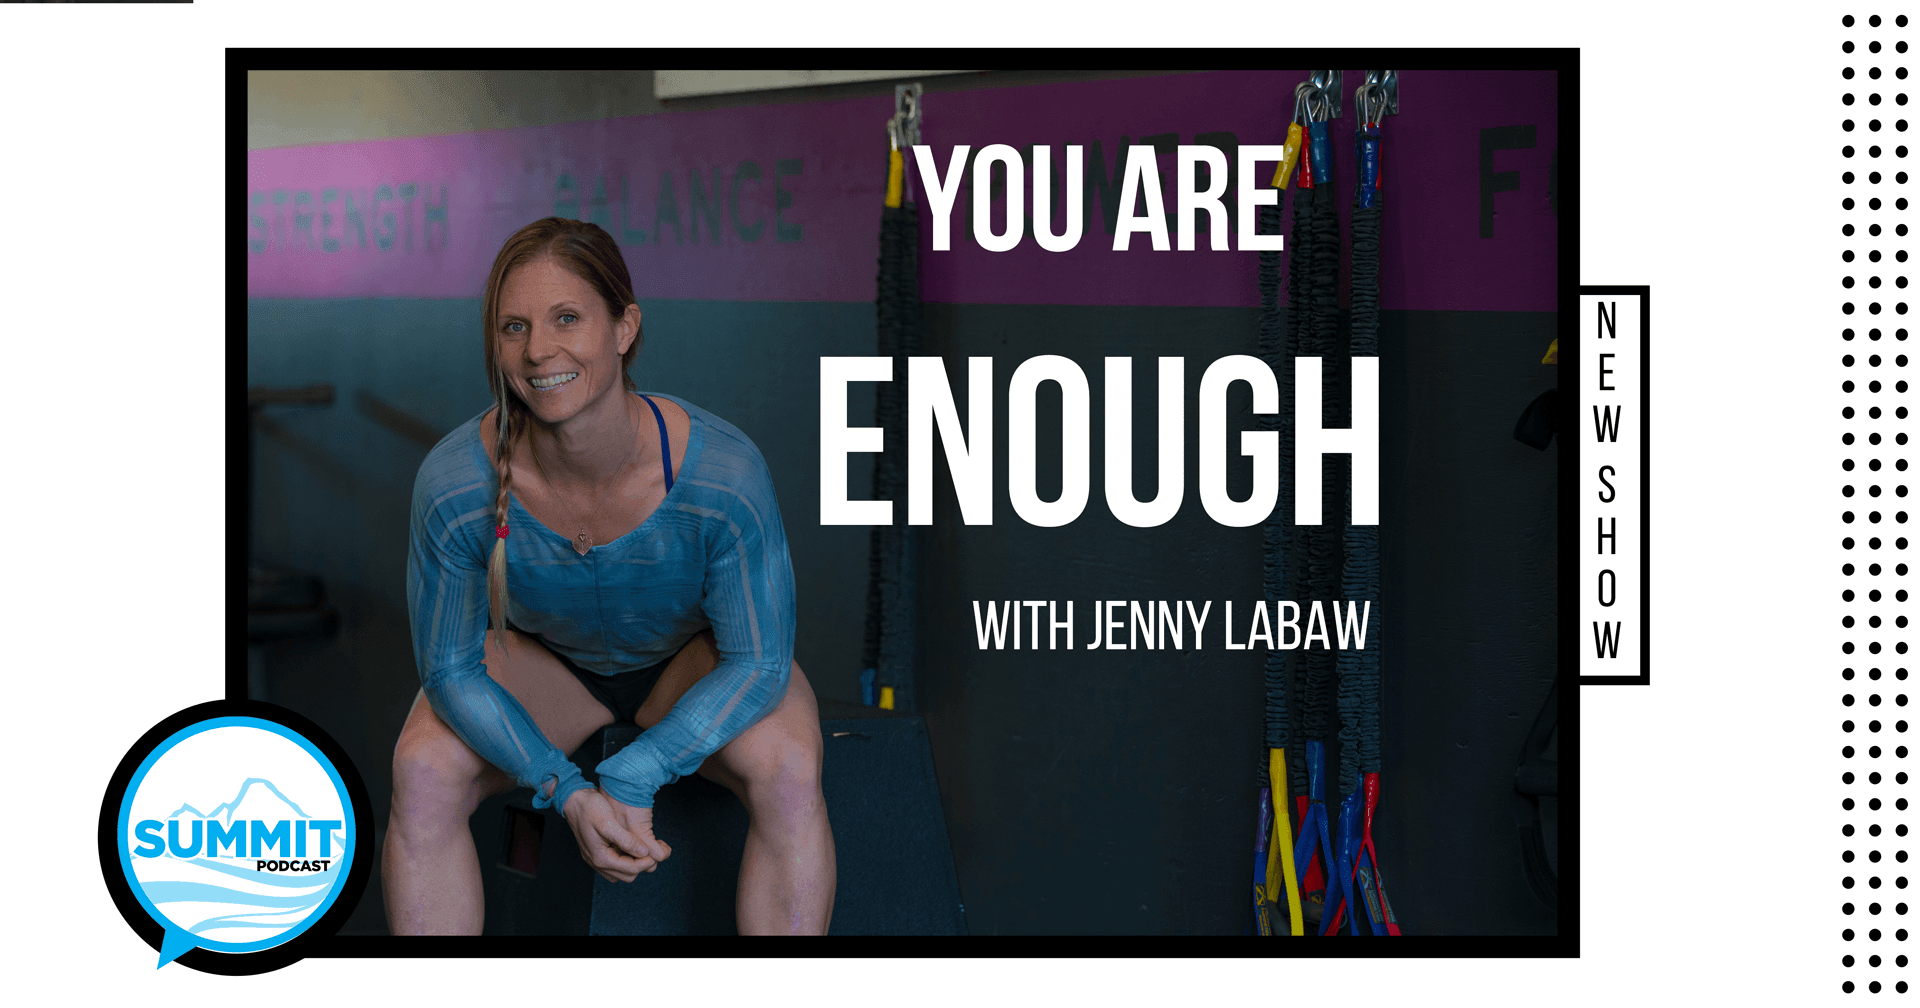 Summit Podcat - You are enough with Jenny Lebaw